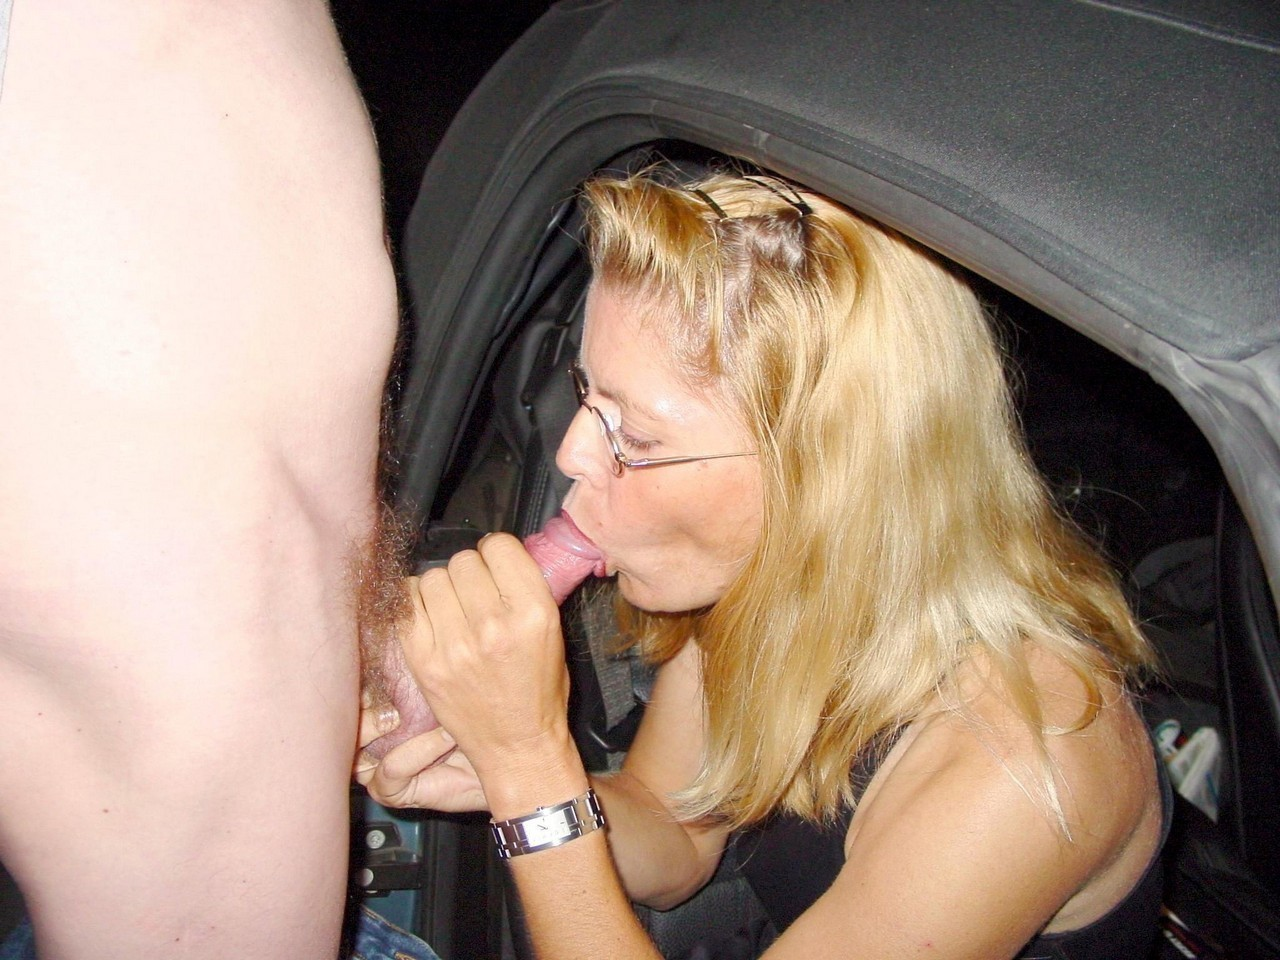 Public blowjob and sex for money roleplay by anny walker